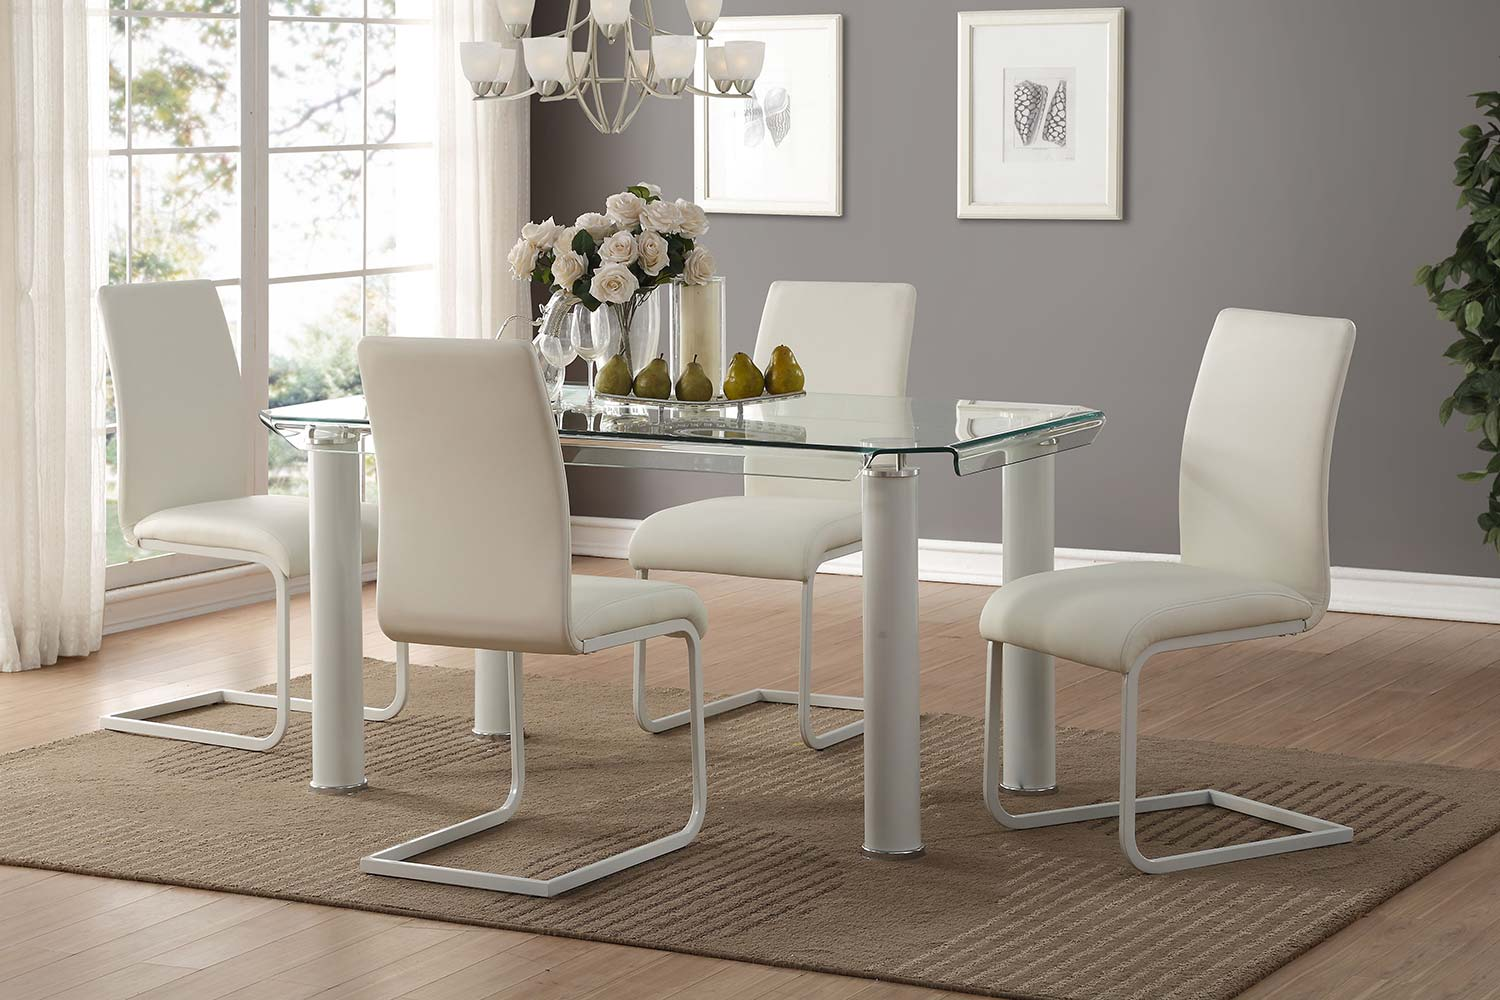 Acme Gordie C Metal Shape Dining Set - White/Clear Glass